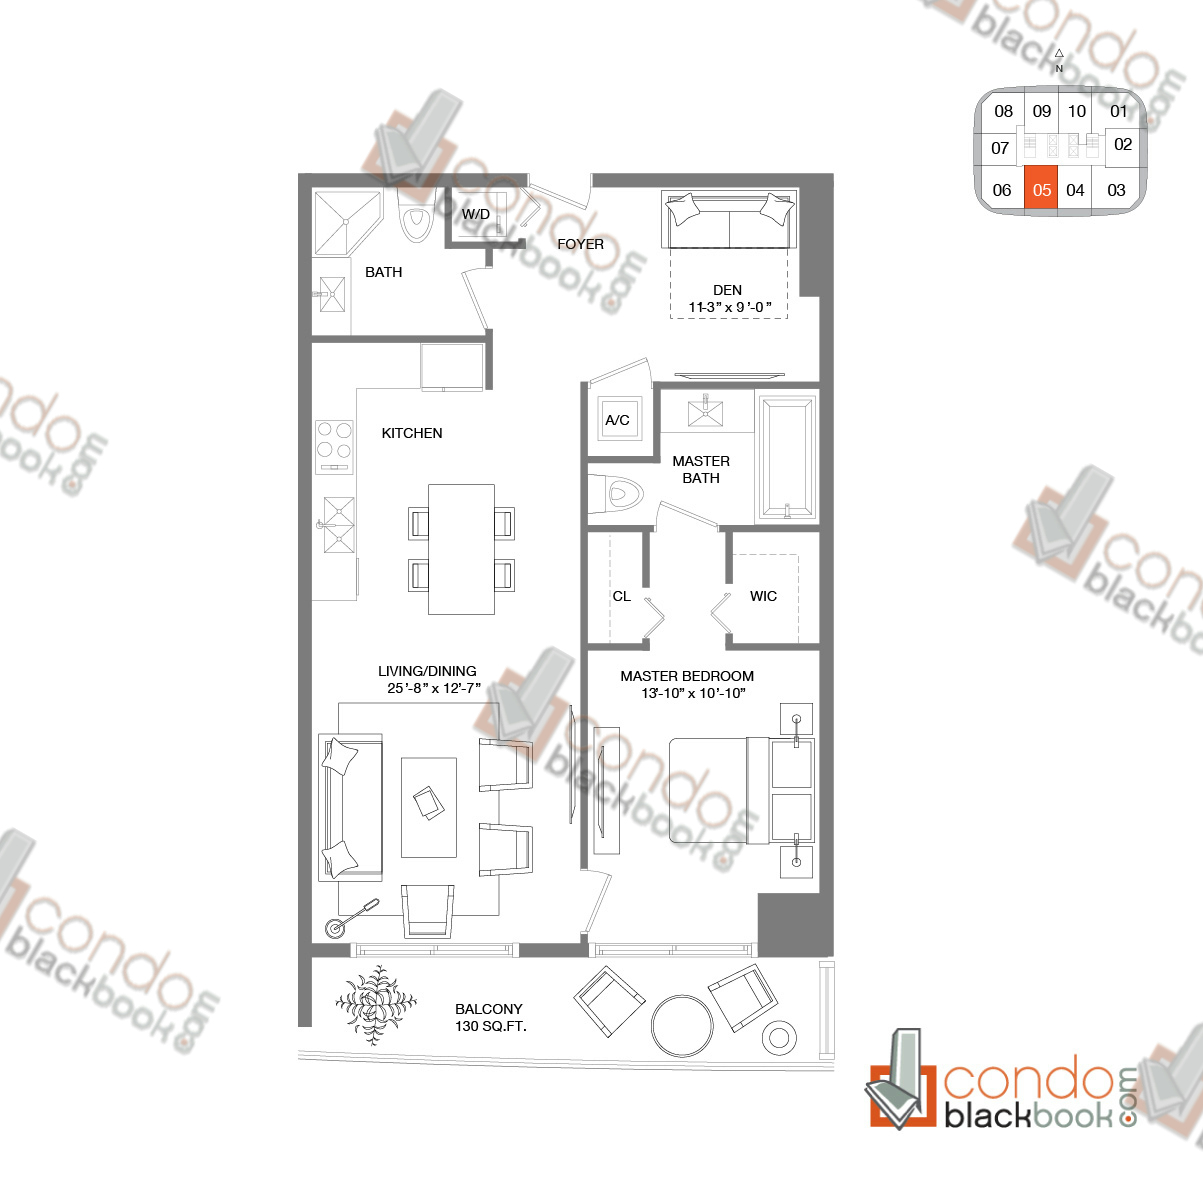 Floor plan for Brickell Heights West Tower Brickell Miami, model RESIDENCE 05, line 05, 1/2+Den bedrooms, 944 sq ft